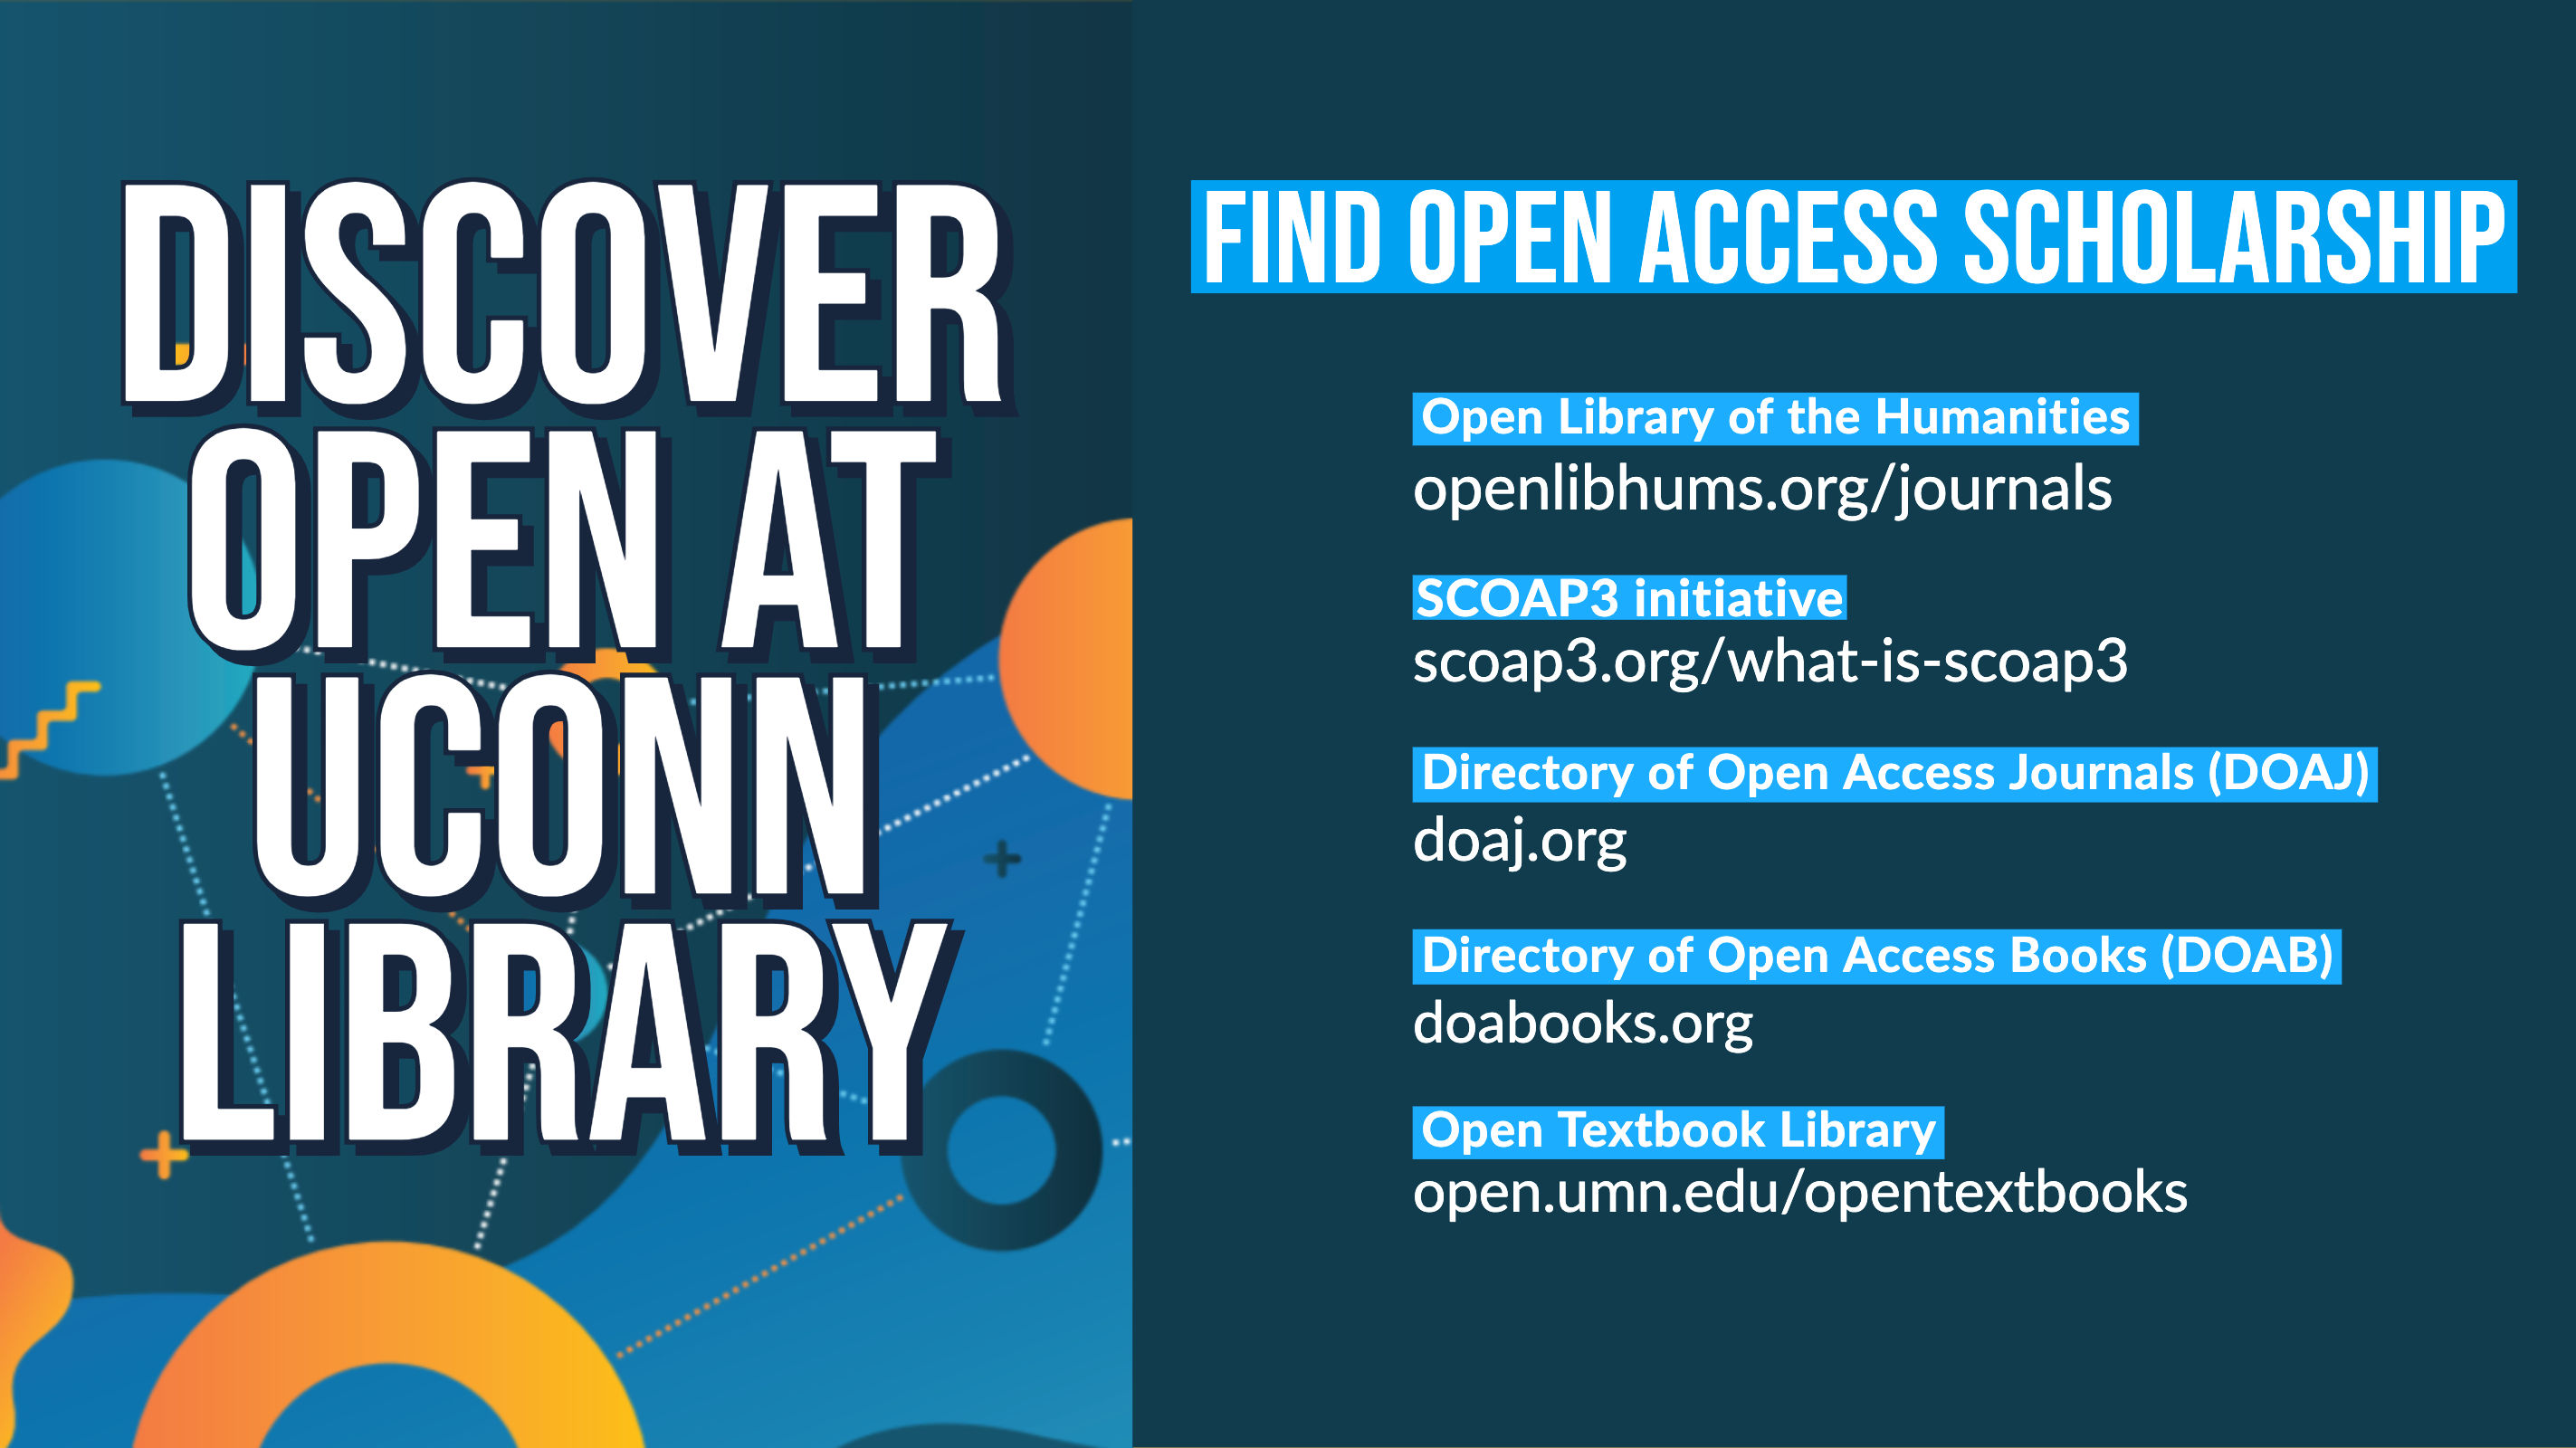 Discover Open at UConn Library Find Open Access Scholarship • Open Library of the Humanities https://www.openlibhums.org/journals/ • SCOAP3 initiative - https://scoap3.org/what-is-scoap3/ • Directory of Open Access Journals (DOAJ) - https://doaj.org/ • Directory of Open Access Books (DOAB) - https://www.doabooks.org/ • Open Textbook Library - https://open.umn.edu/opentextbooks/